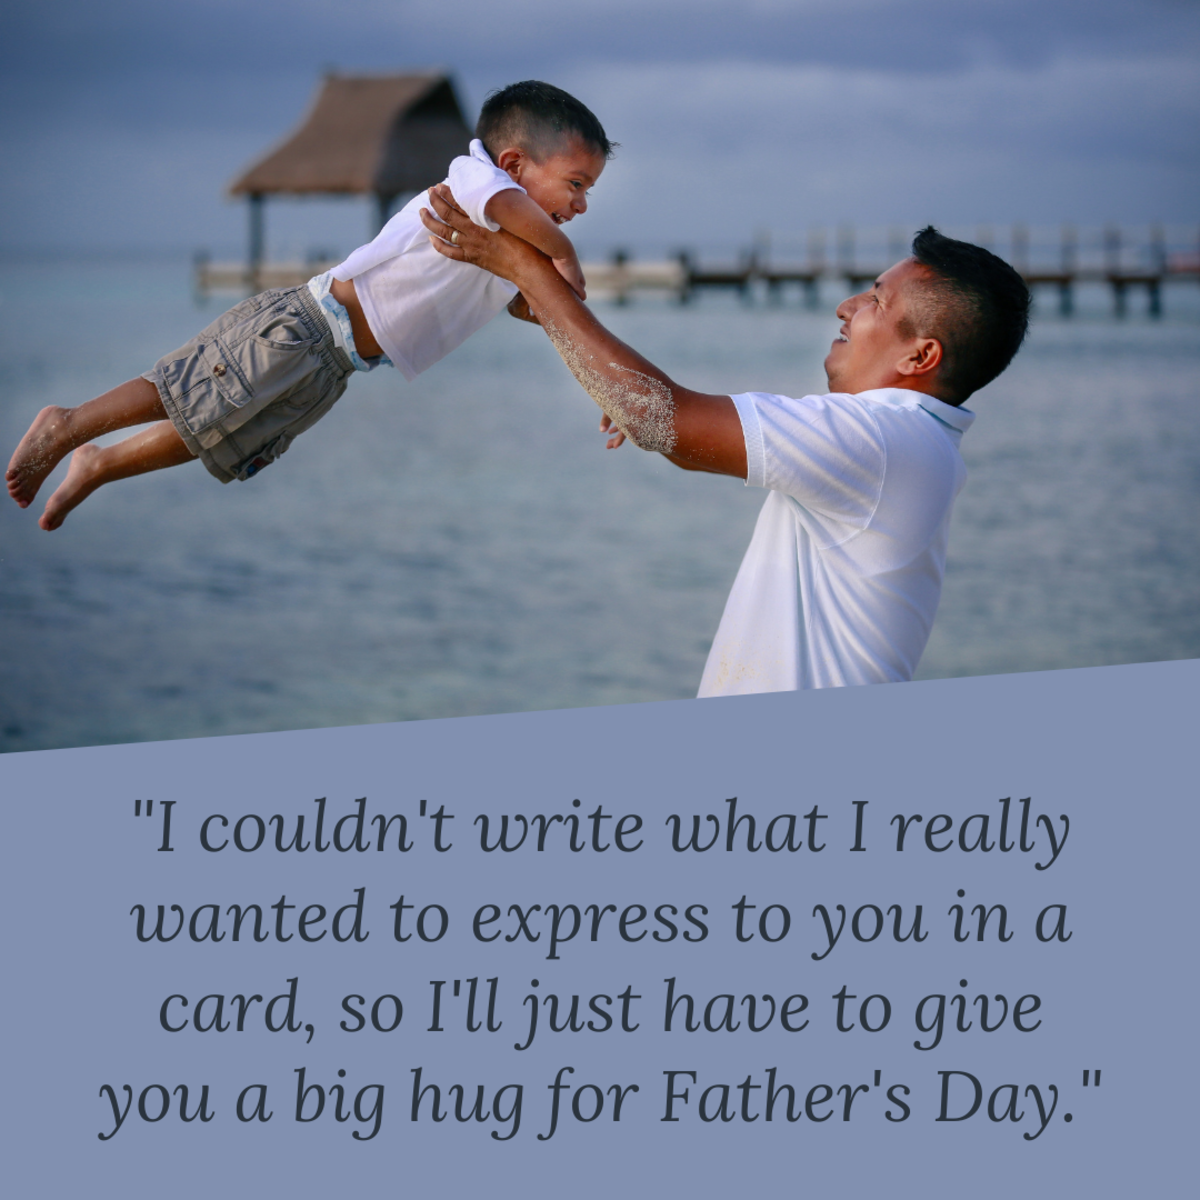 Some dads appreciate a humorous message of gratitude on Father's Day.